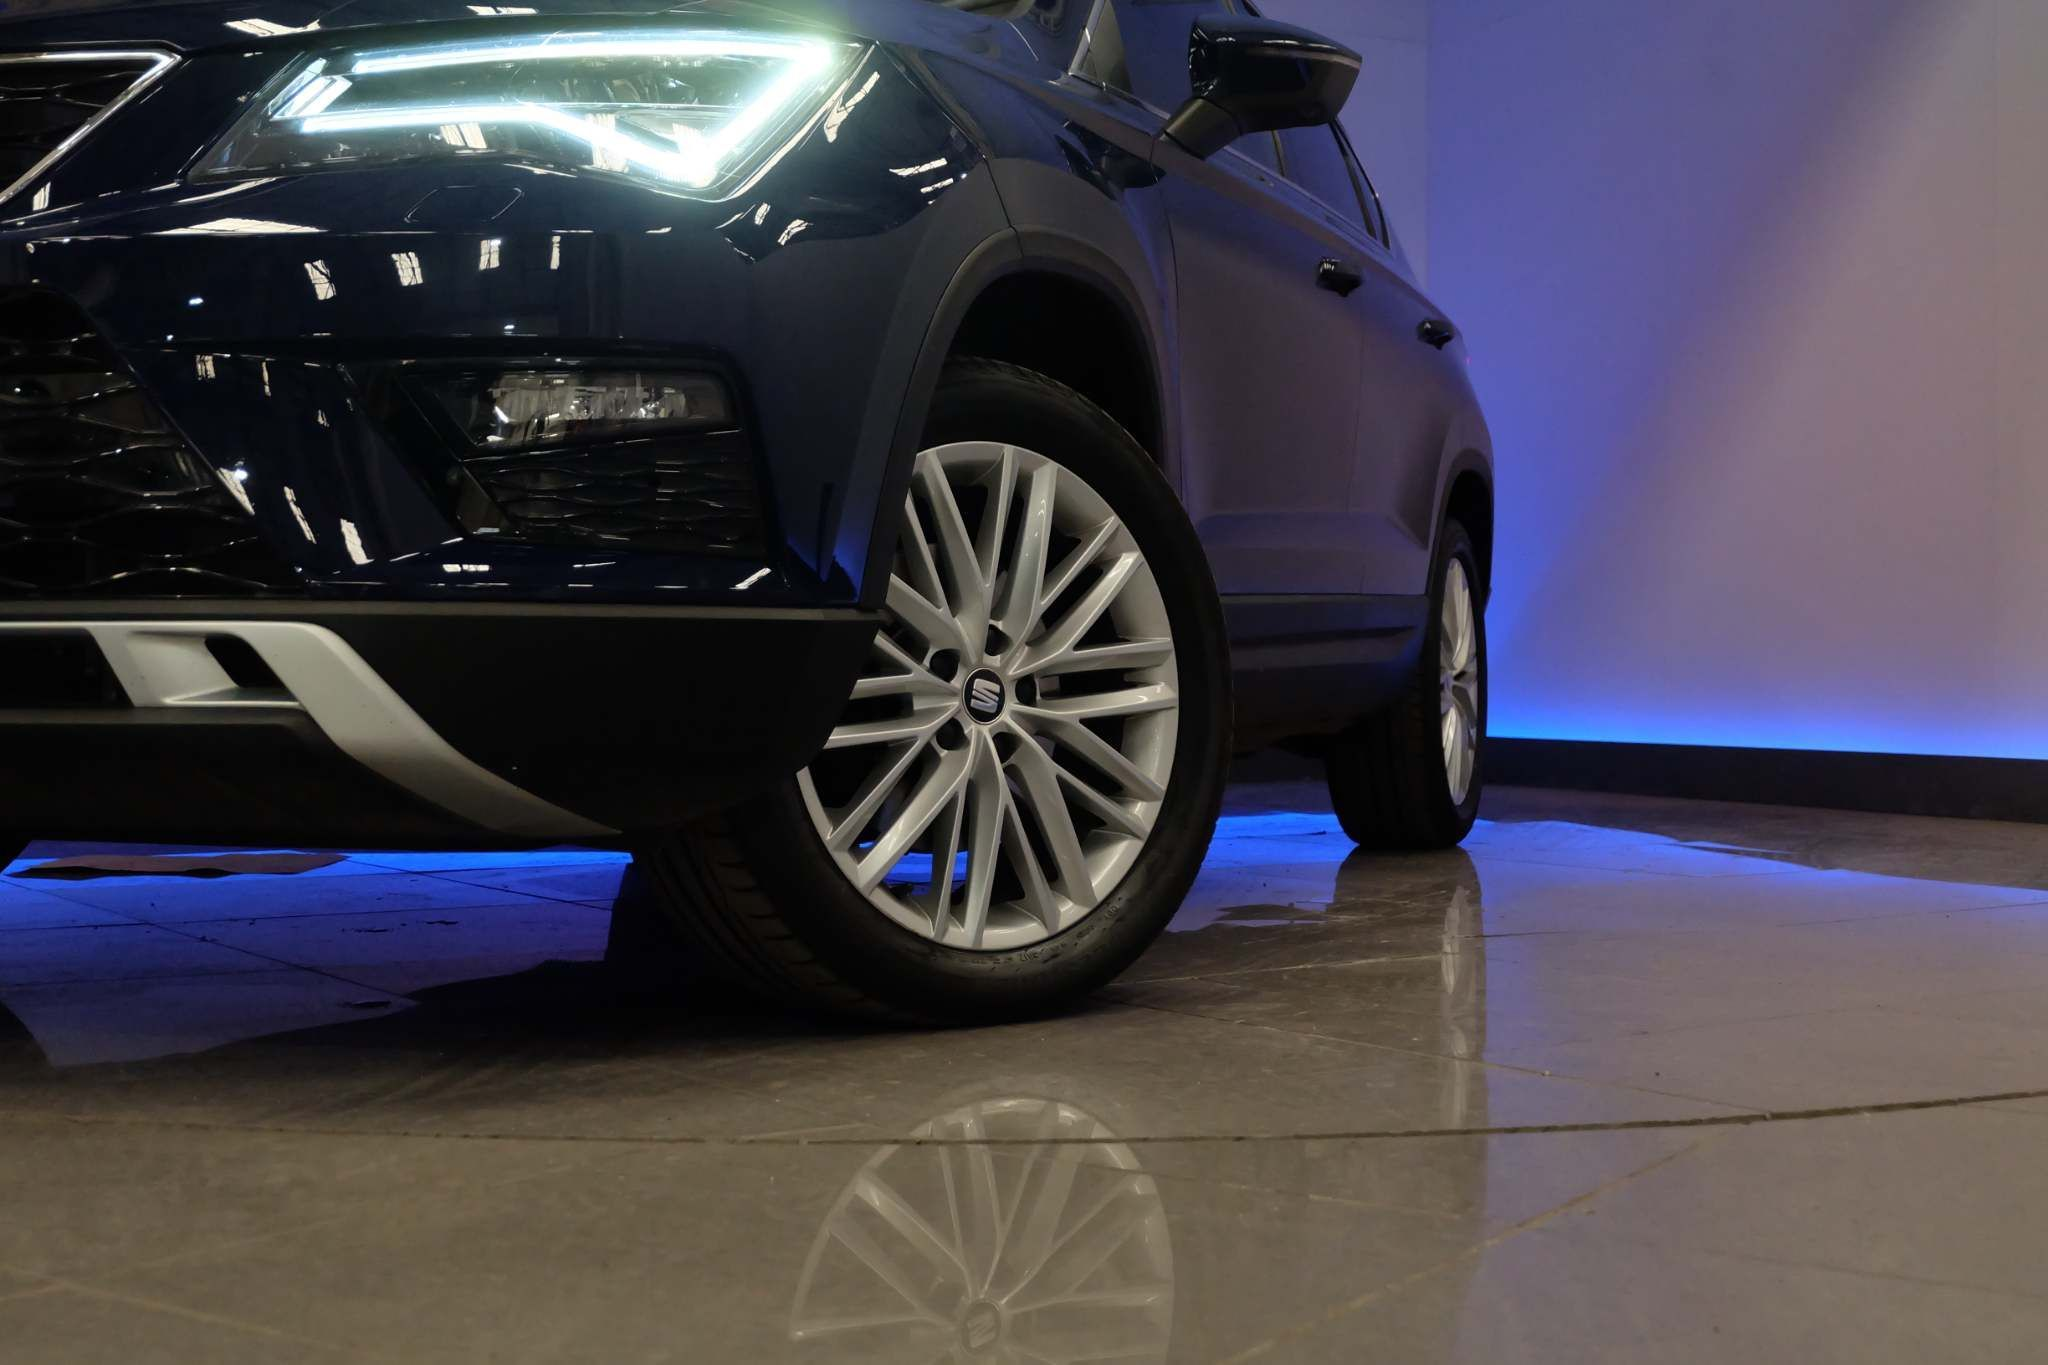 Used SEAT Ateca 2.0 Tdi Xcellence Dsg 4drive (s/s) 5dr